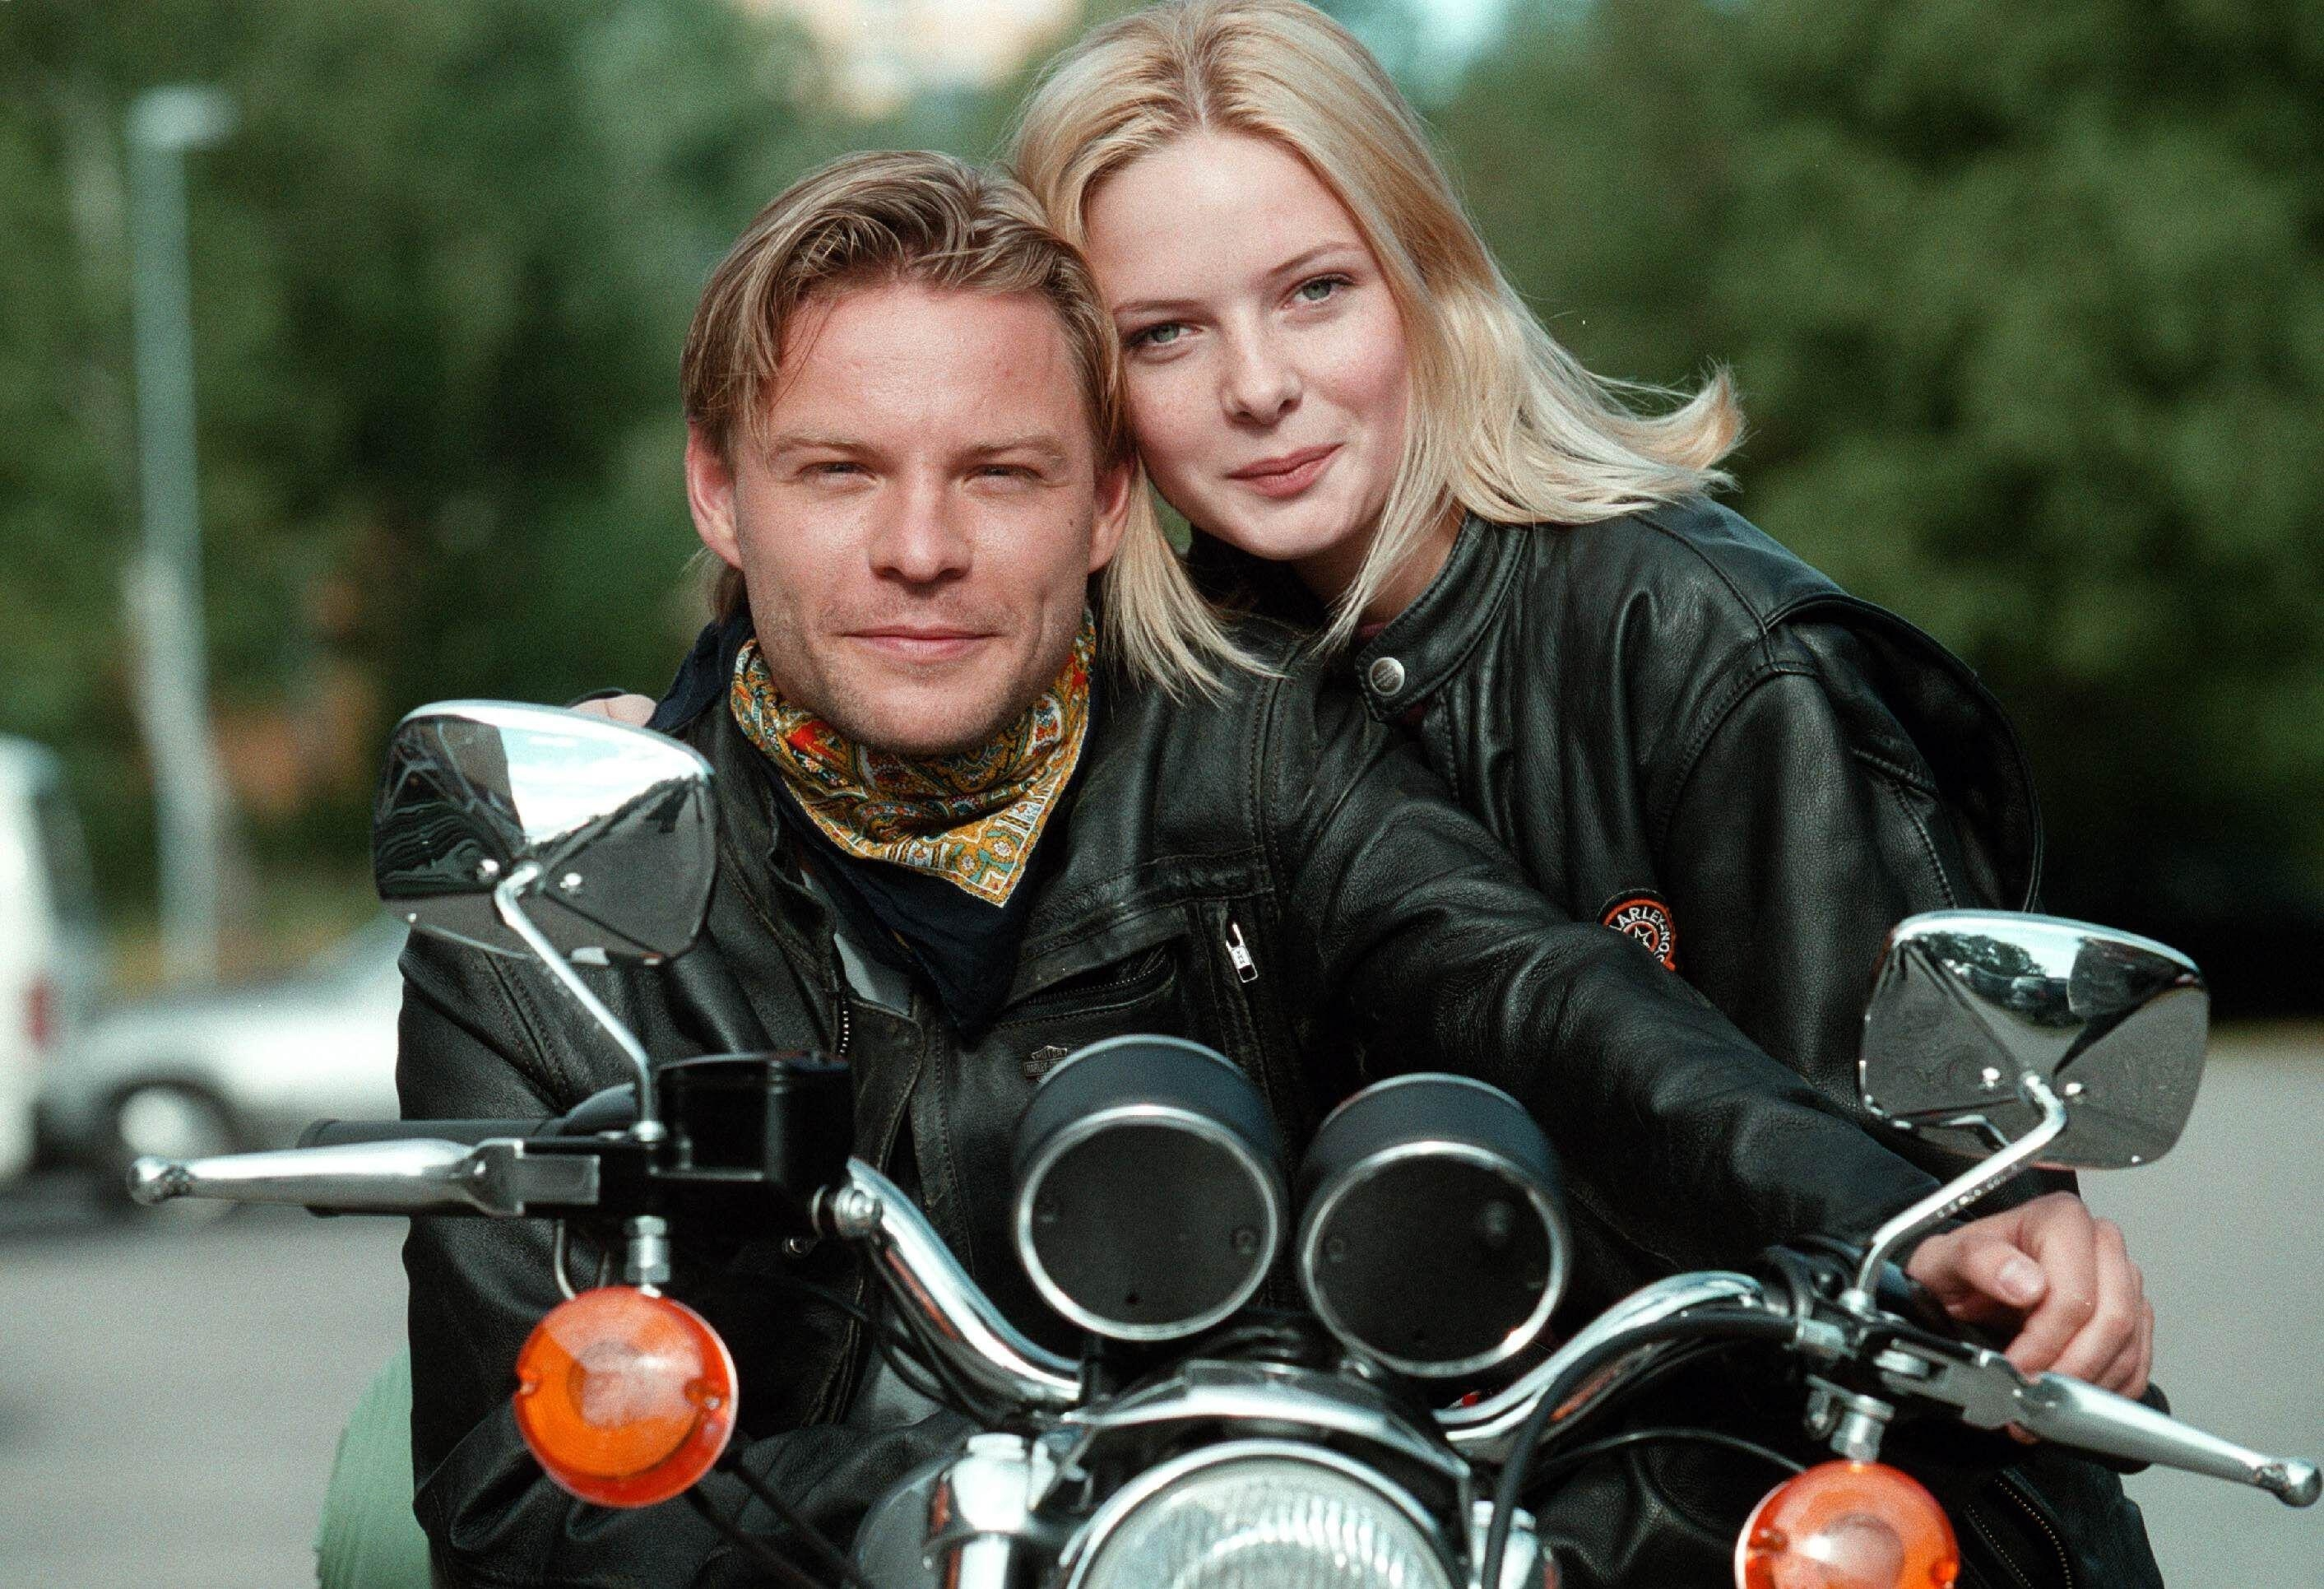 """Still of Rebecca and actor Kim Sulocki on a motorcycle from """"Nya Tider"""""""